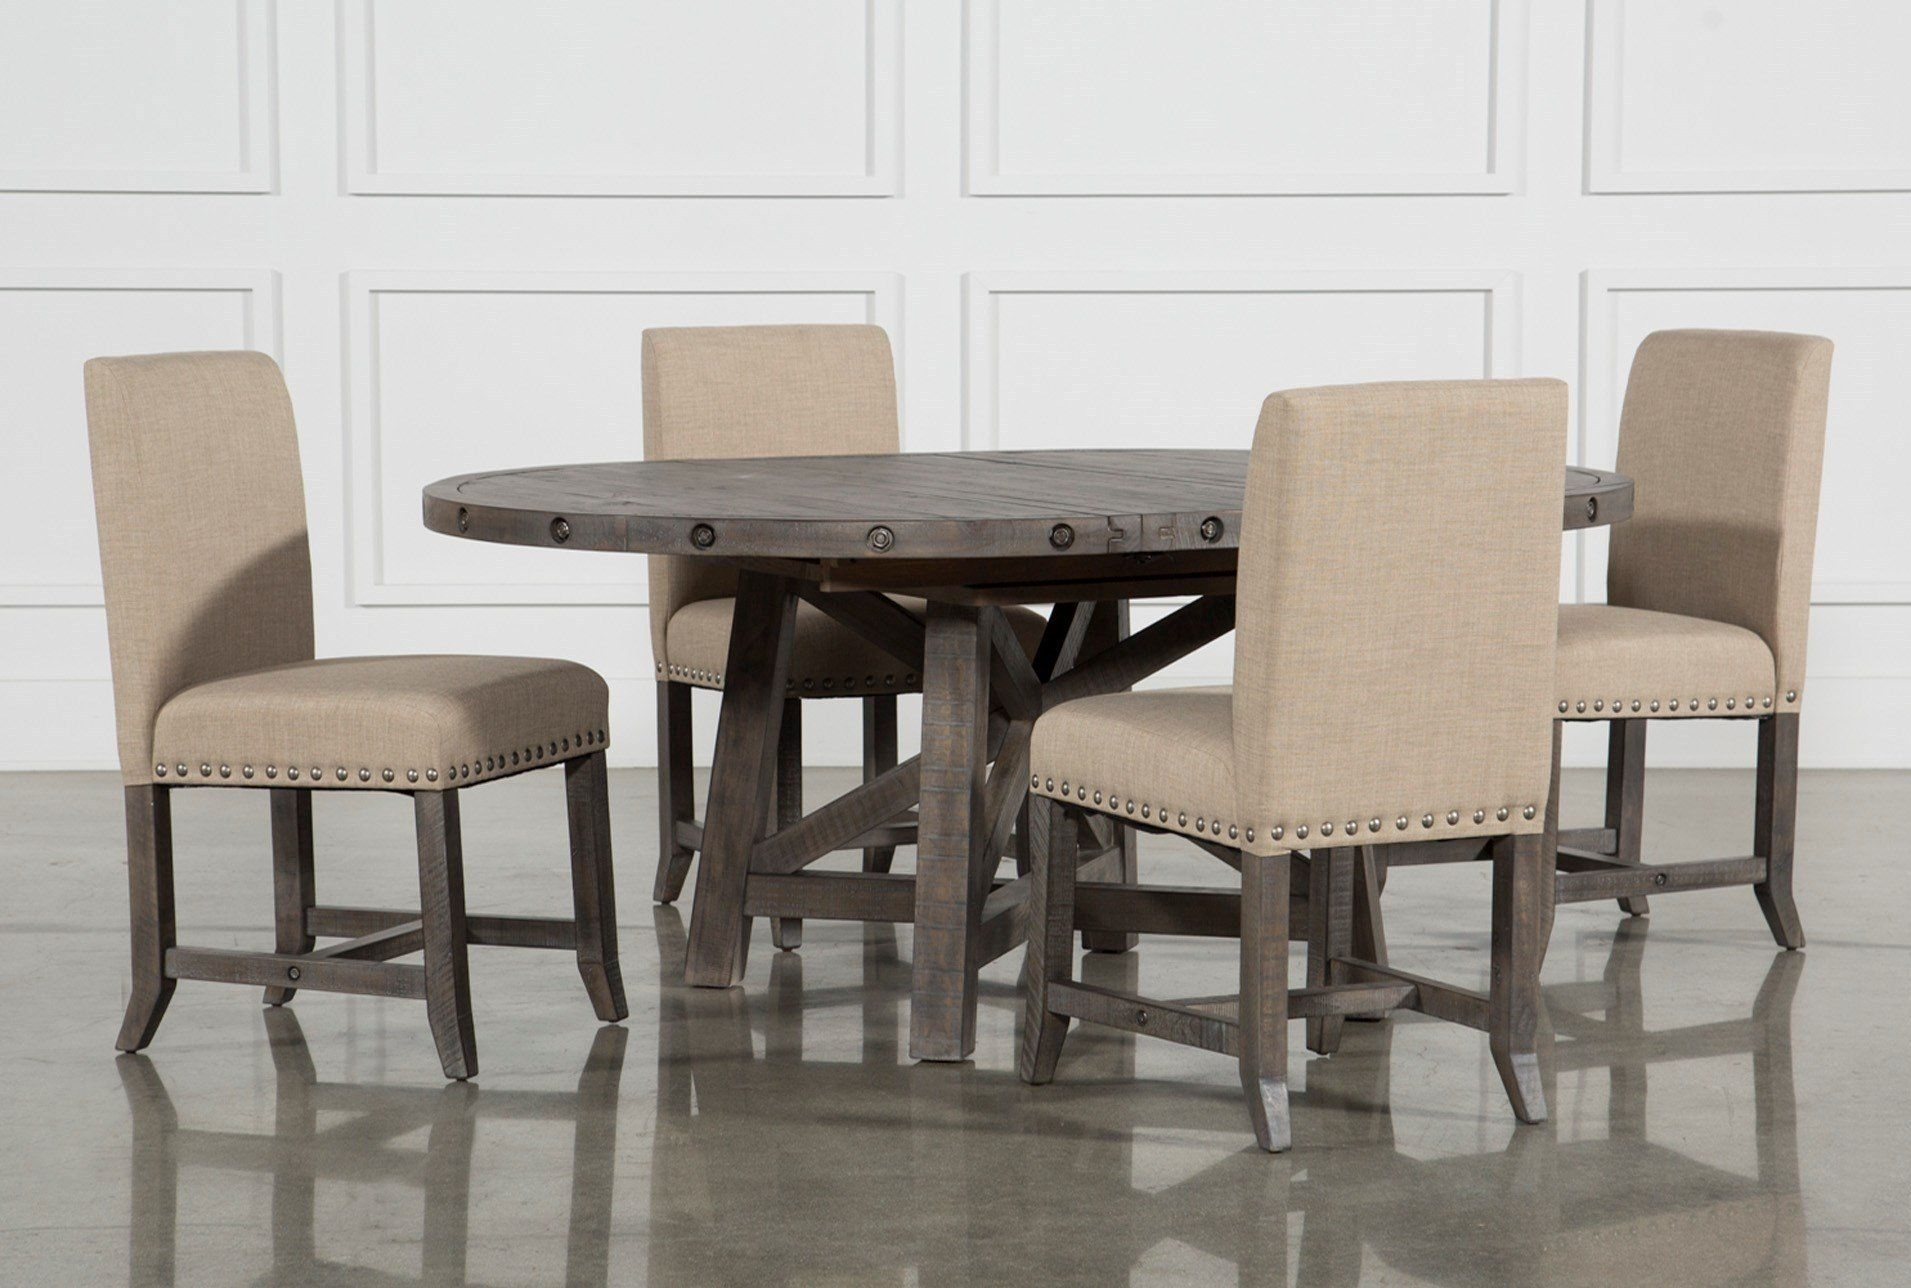 Jaxon Grey 5 Piece Round Extension Dining Set W/upholstered Chairs In Best And Newest Combs 5 Piece Dining Sets With Mindy Slipcovered Chairs (View 4 of 20)